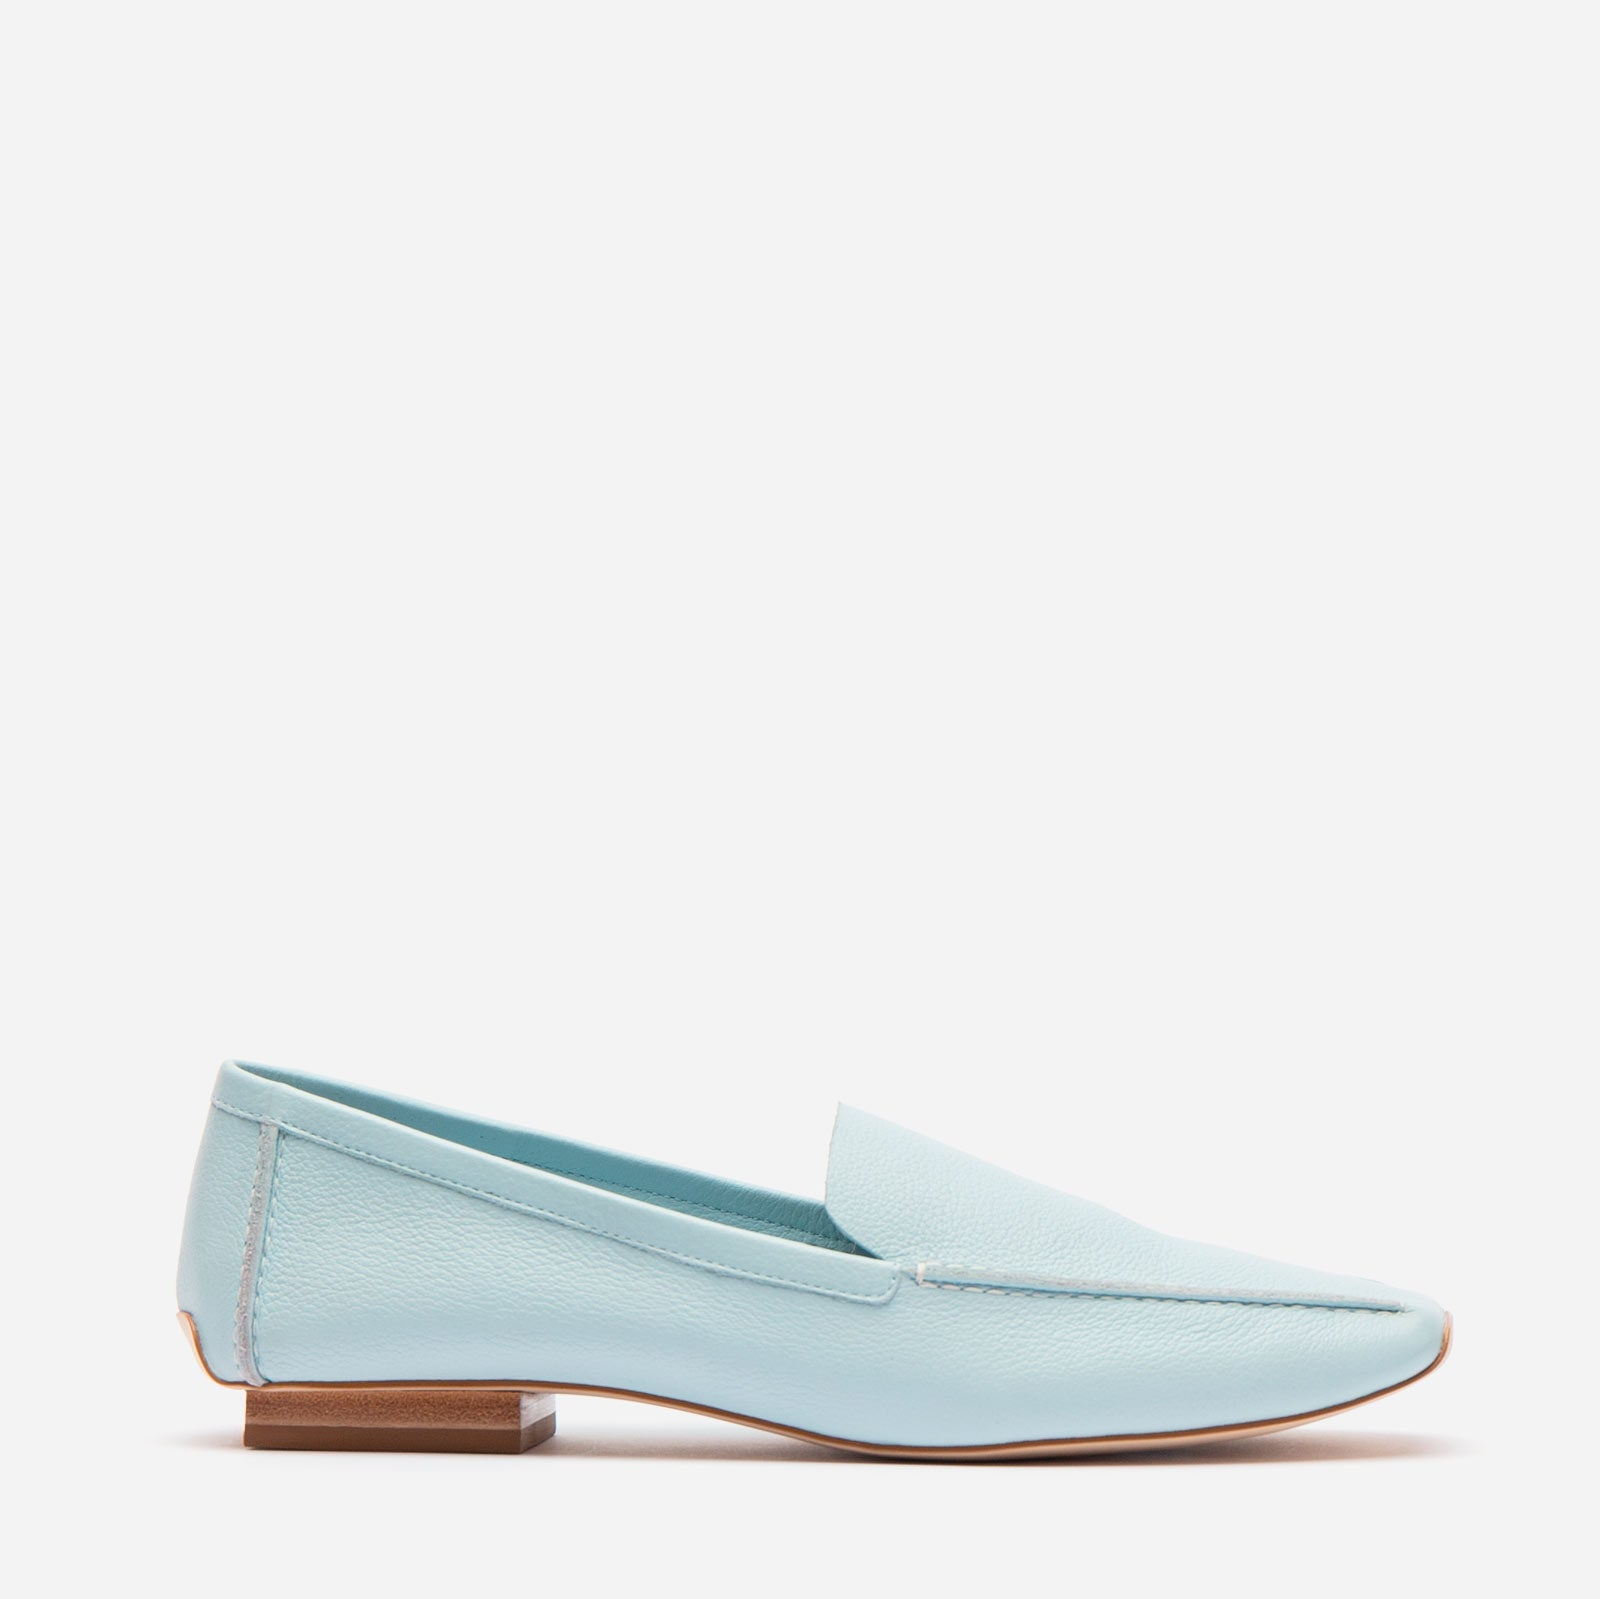 Elyce Loafer Leather Light Blue - Frances Valentine